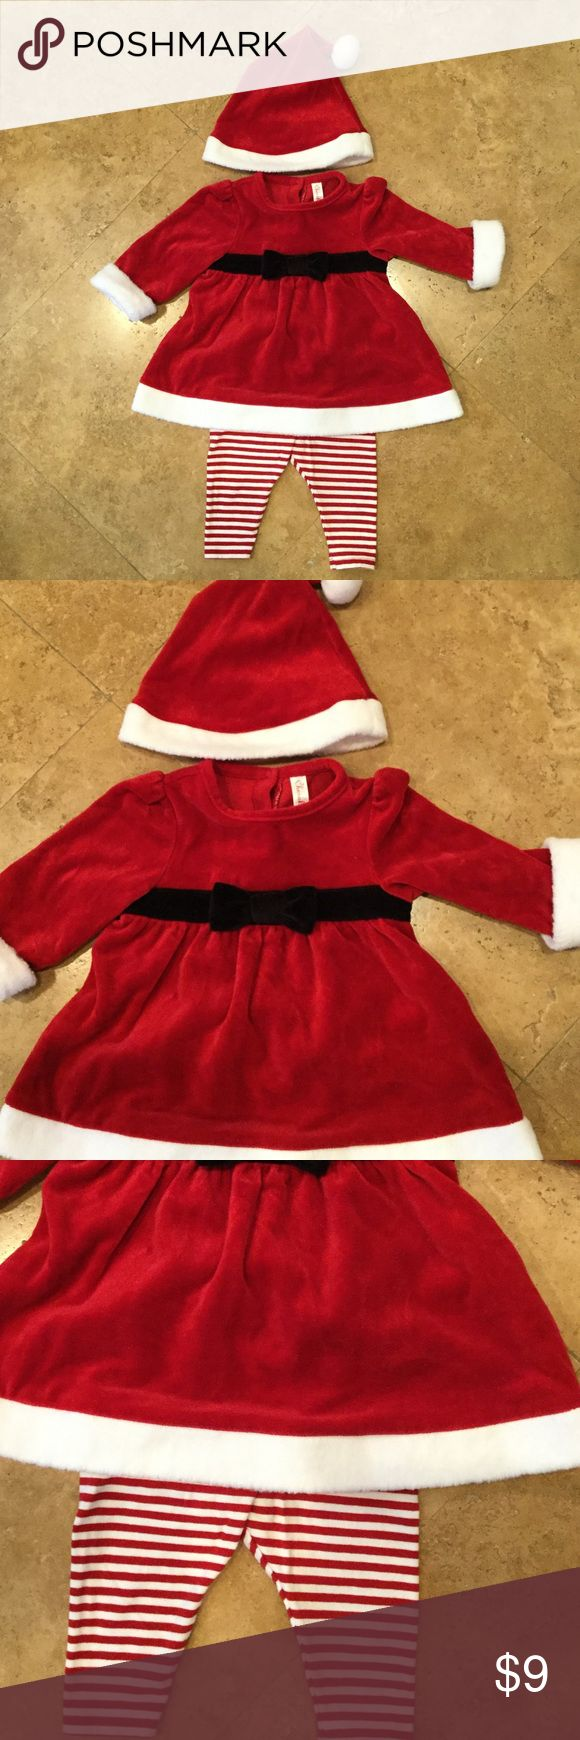 Adorable santa outfit🤶🏽🎅🏽 Adorable santa outfit. Size 3-6 mo.  Comes with hat, dress, and leggings. Dress is velvet like. Preloved euc. Bundle and save! Dresses